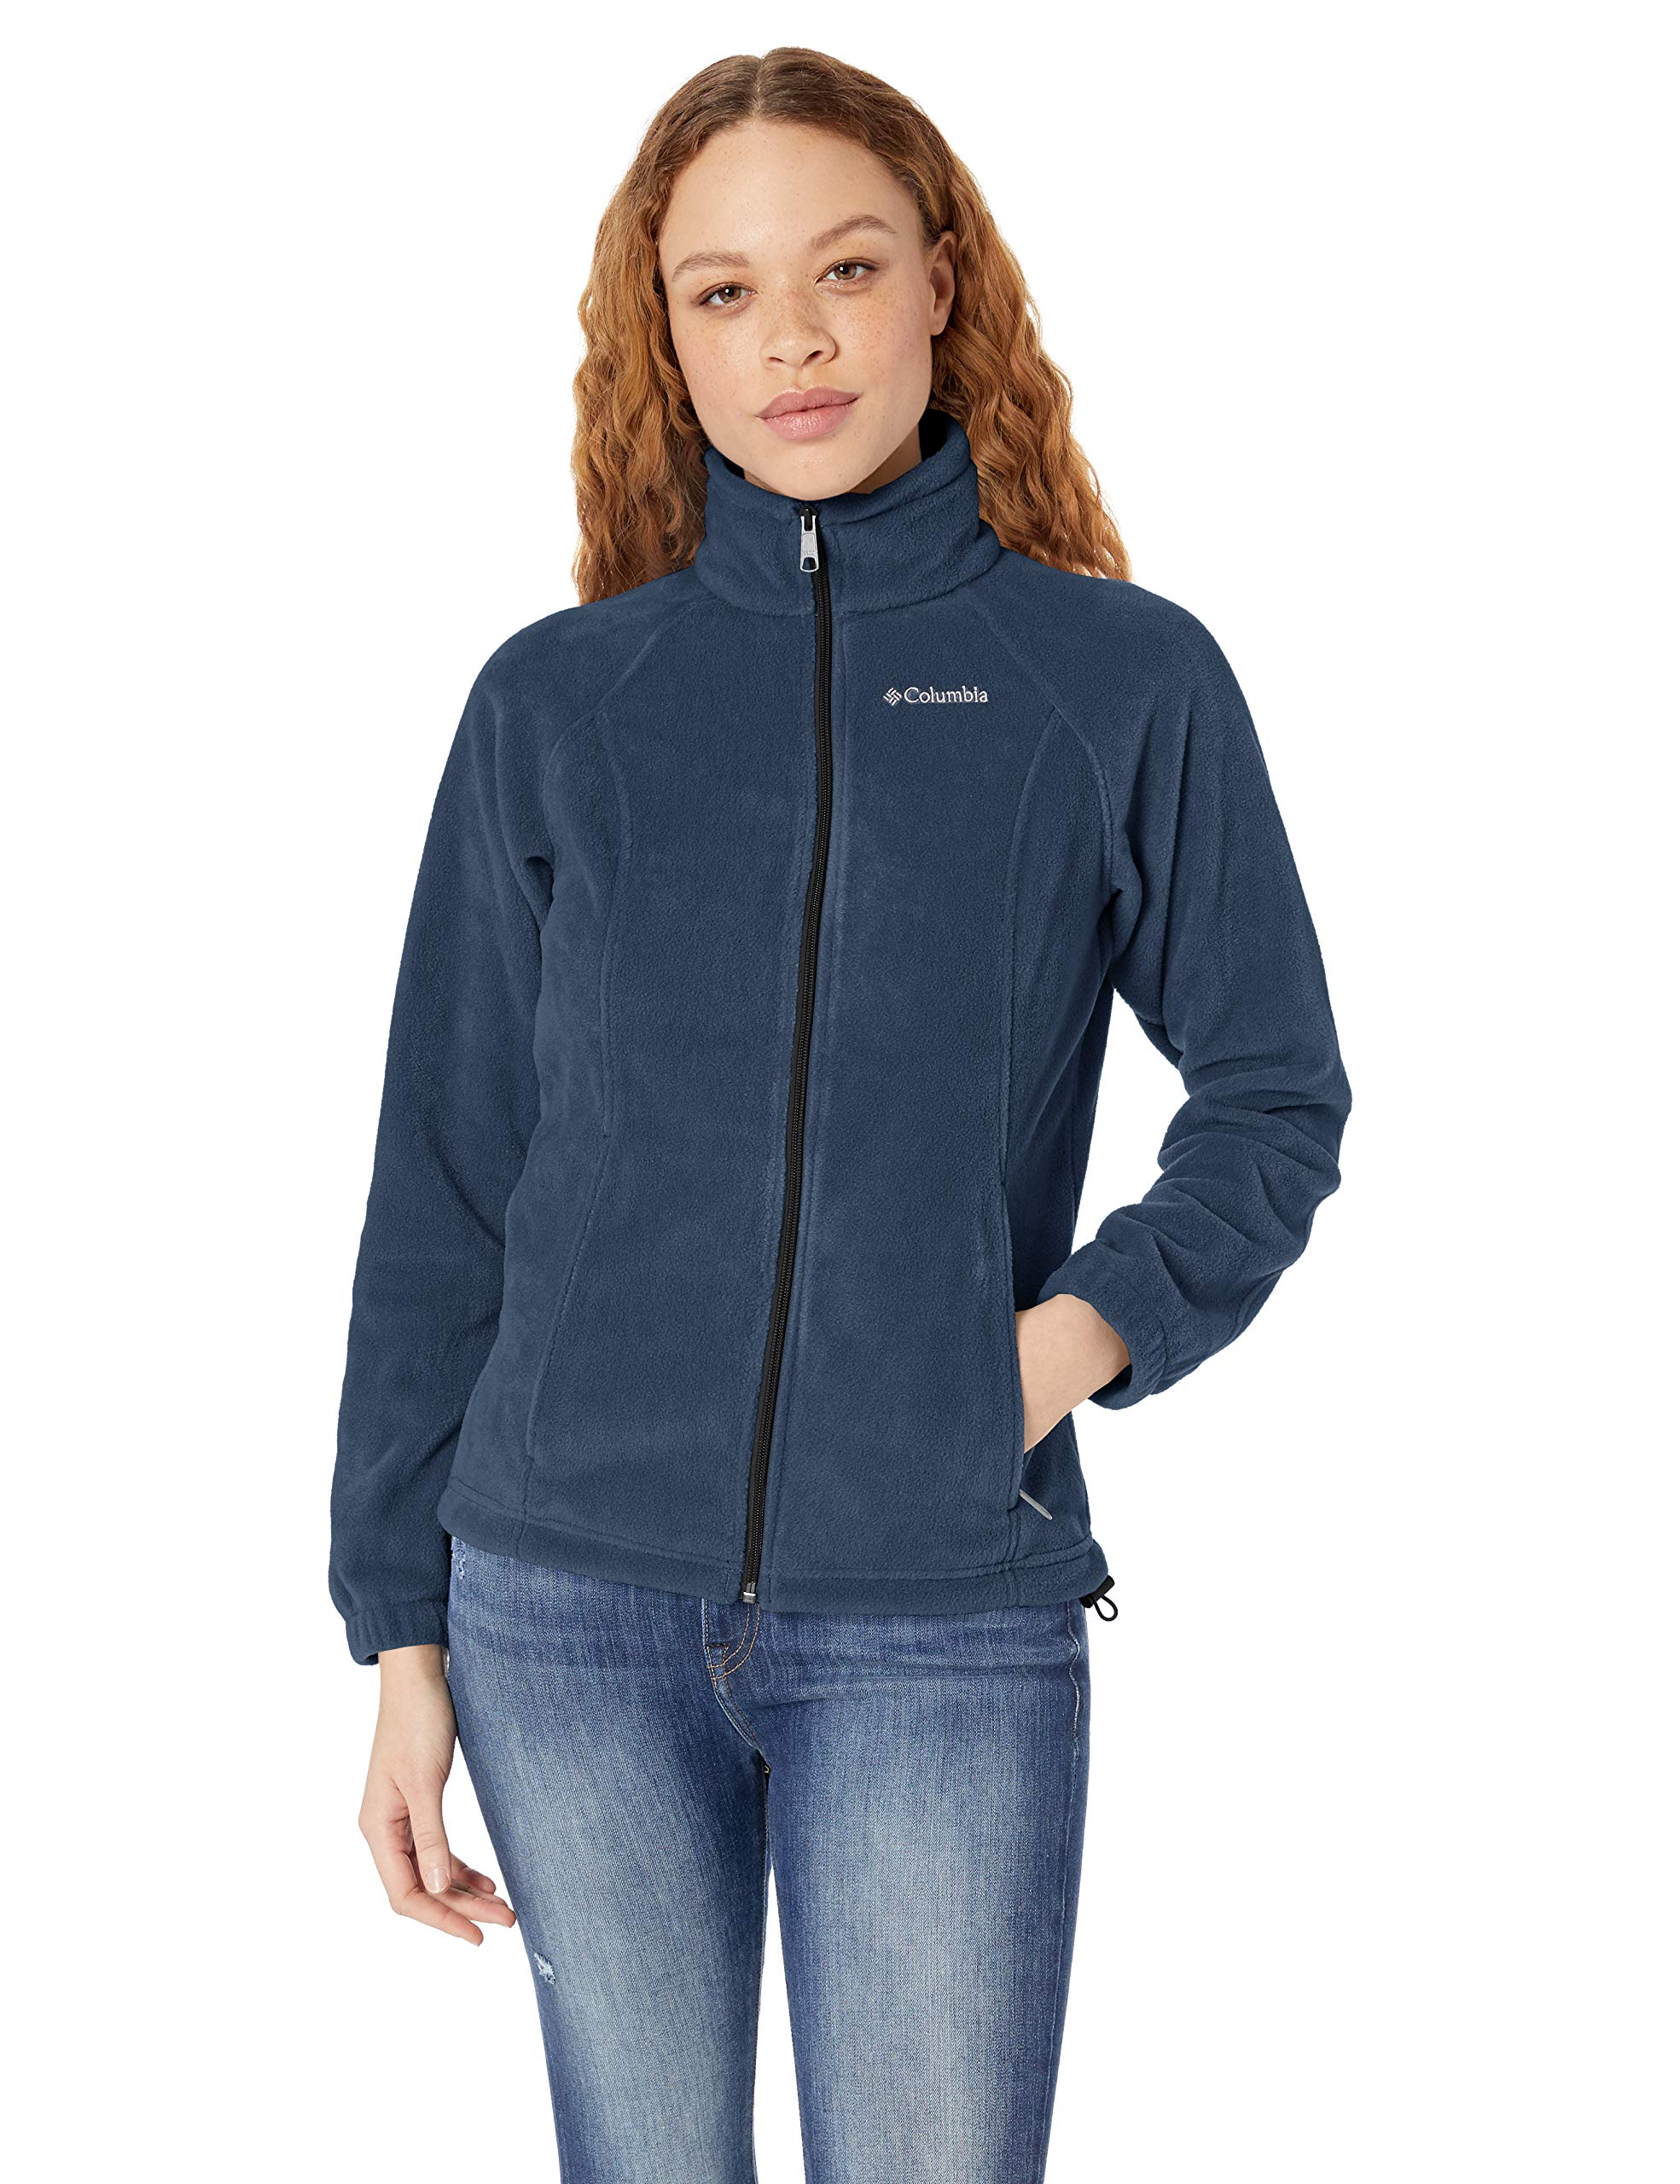 Columbia Women's Benton Springs Full Zip Jacket, Soft Fleece with Classic Fit, Navy, Medium by Columbia